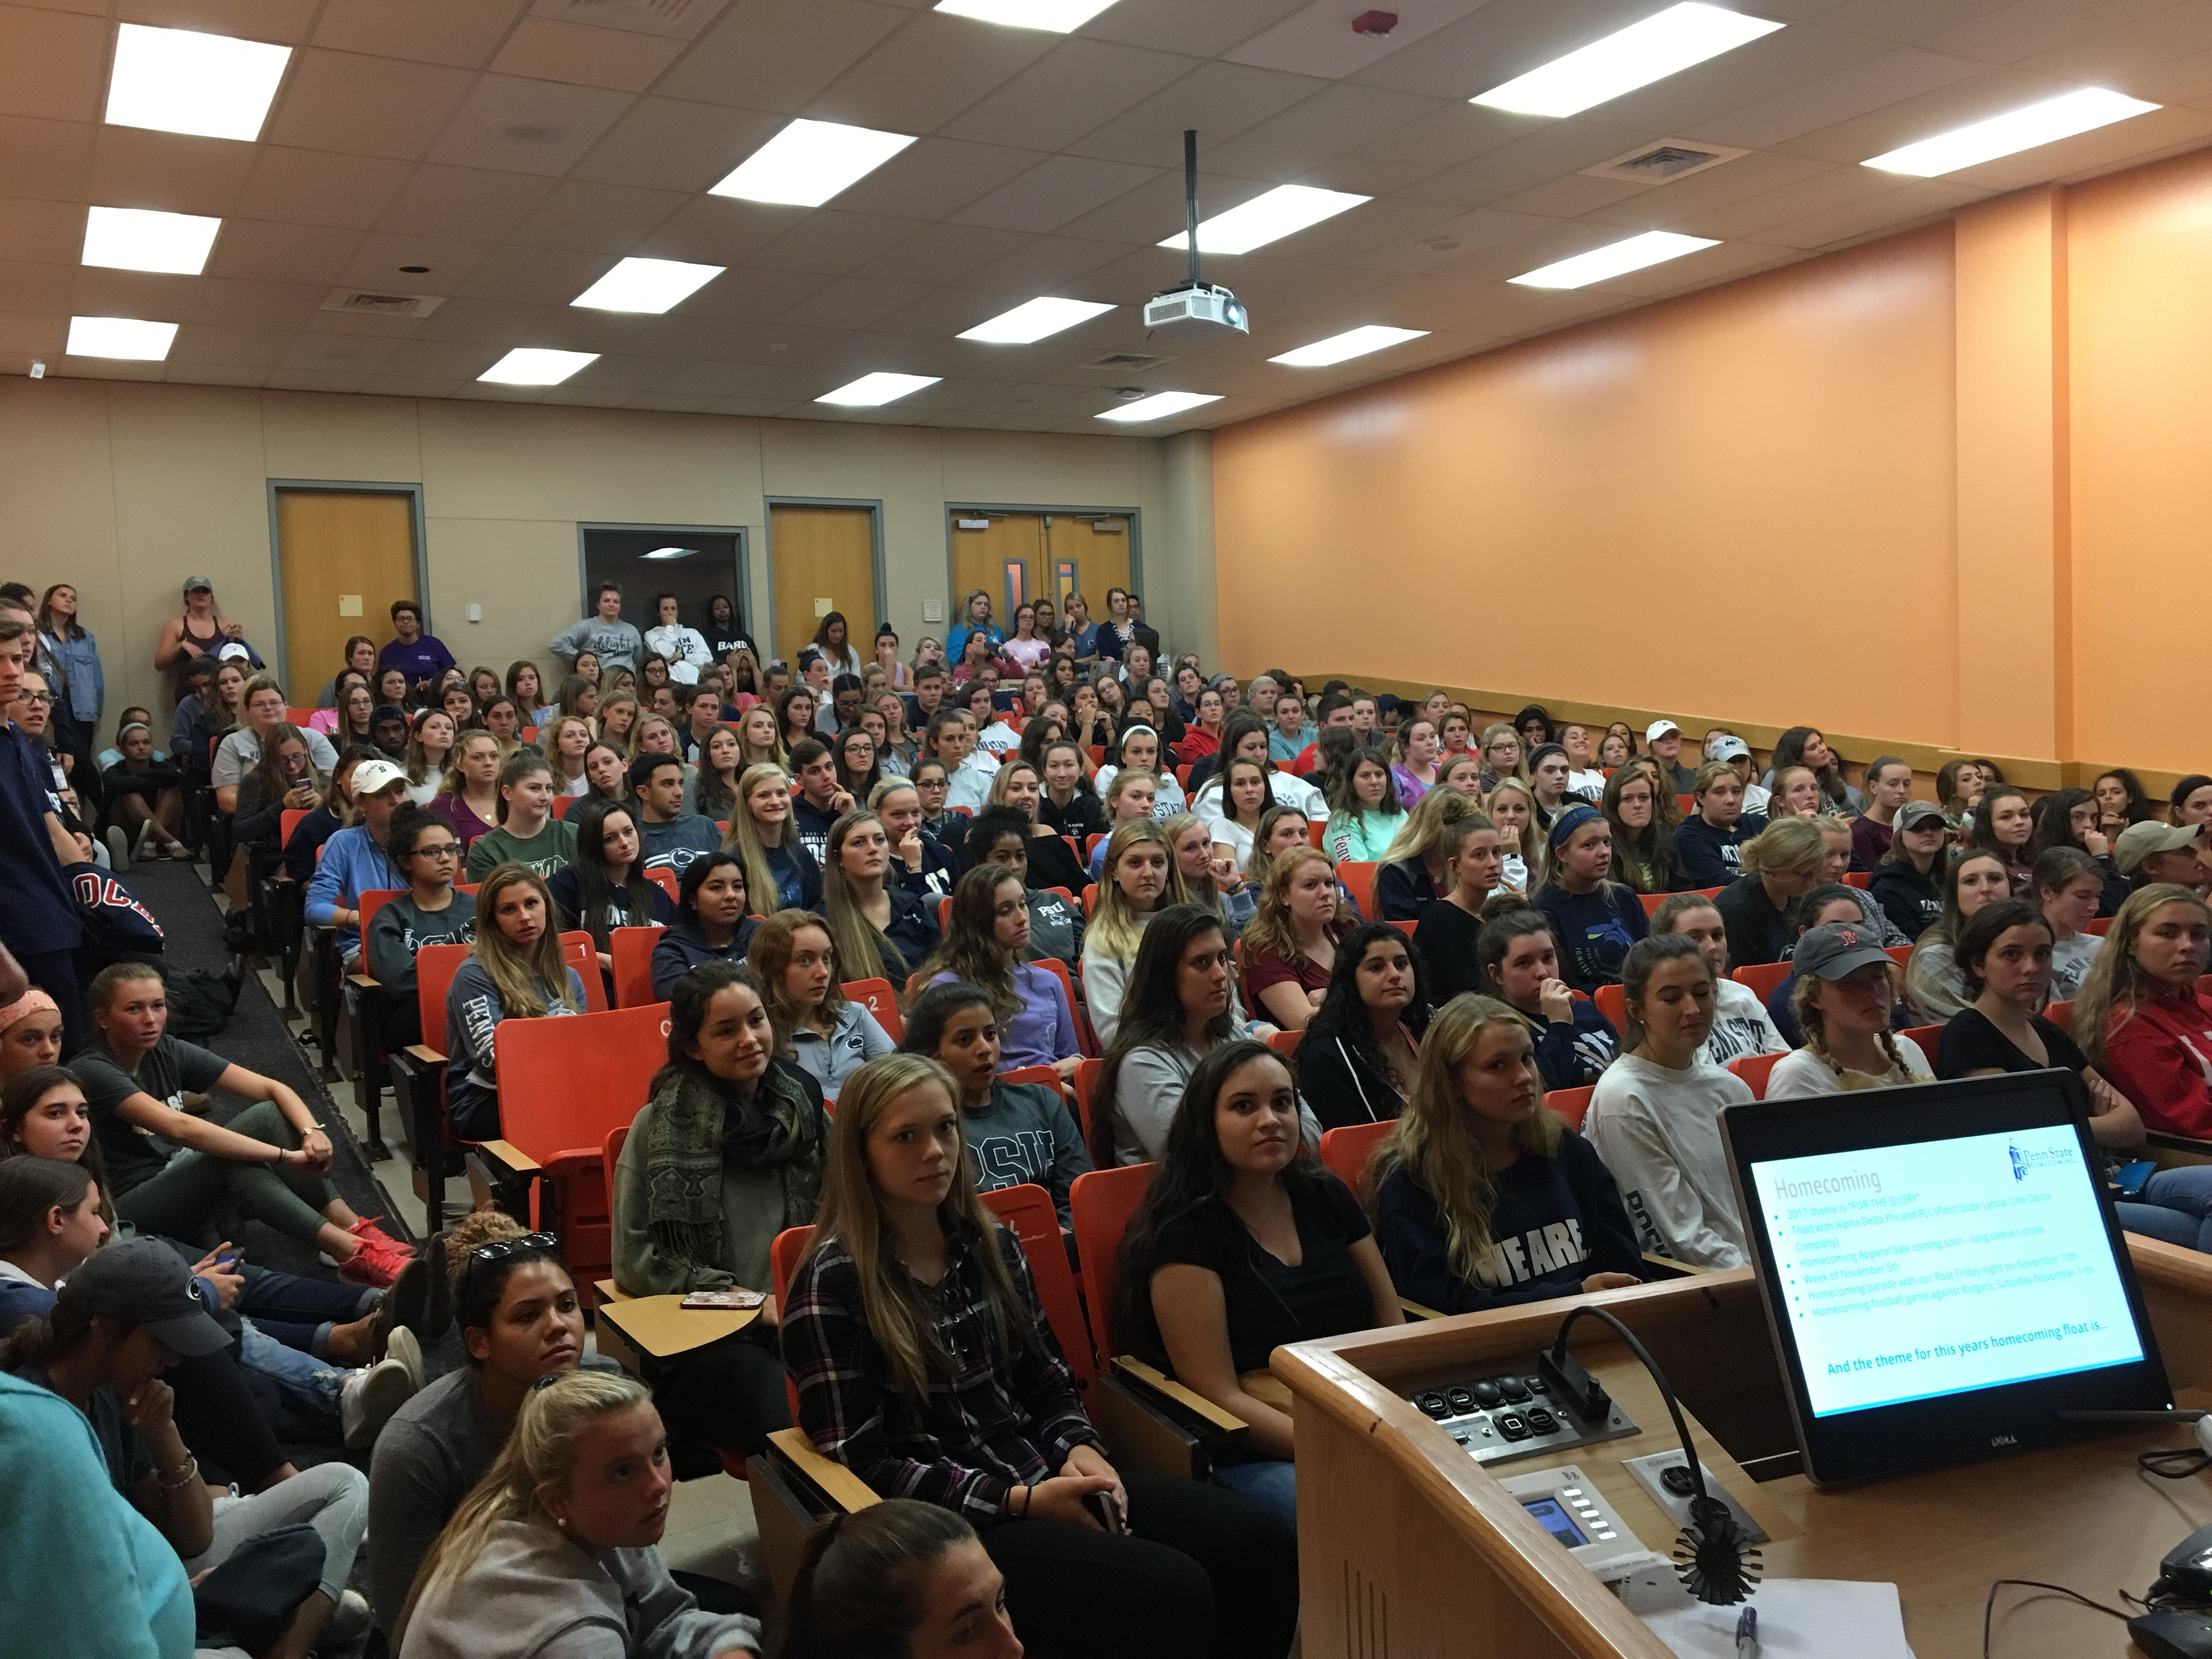 The Penn State Student Nurses' Association of Pennsylvania (SNAP) chapter had a record attendance -- 260! -- at their first meeting of the year August 29. Chapter adviser Mary Ellen Yonushonis said that is 100 more than the previous record. %22The students' enthusiasm and number of activities continue to grow,%22 she said. Thanks to PR chair Christian Schreckhise for the photo!